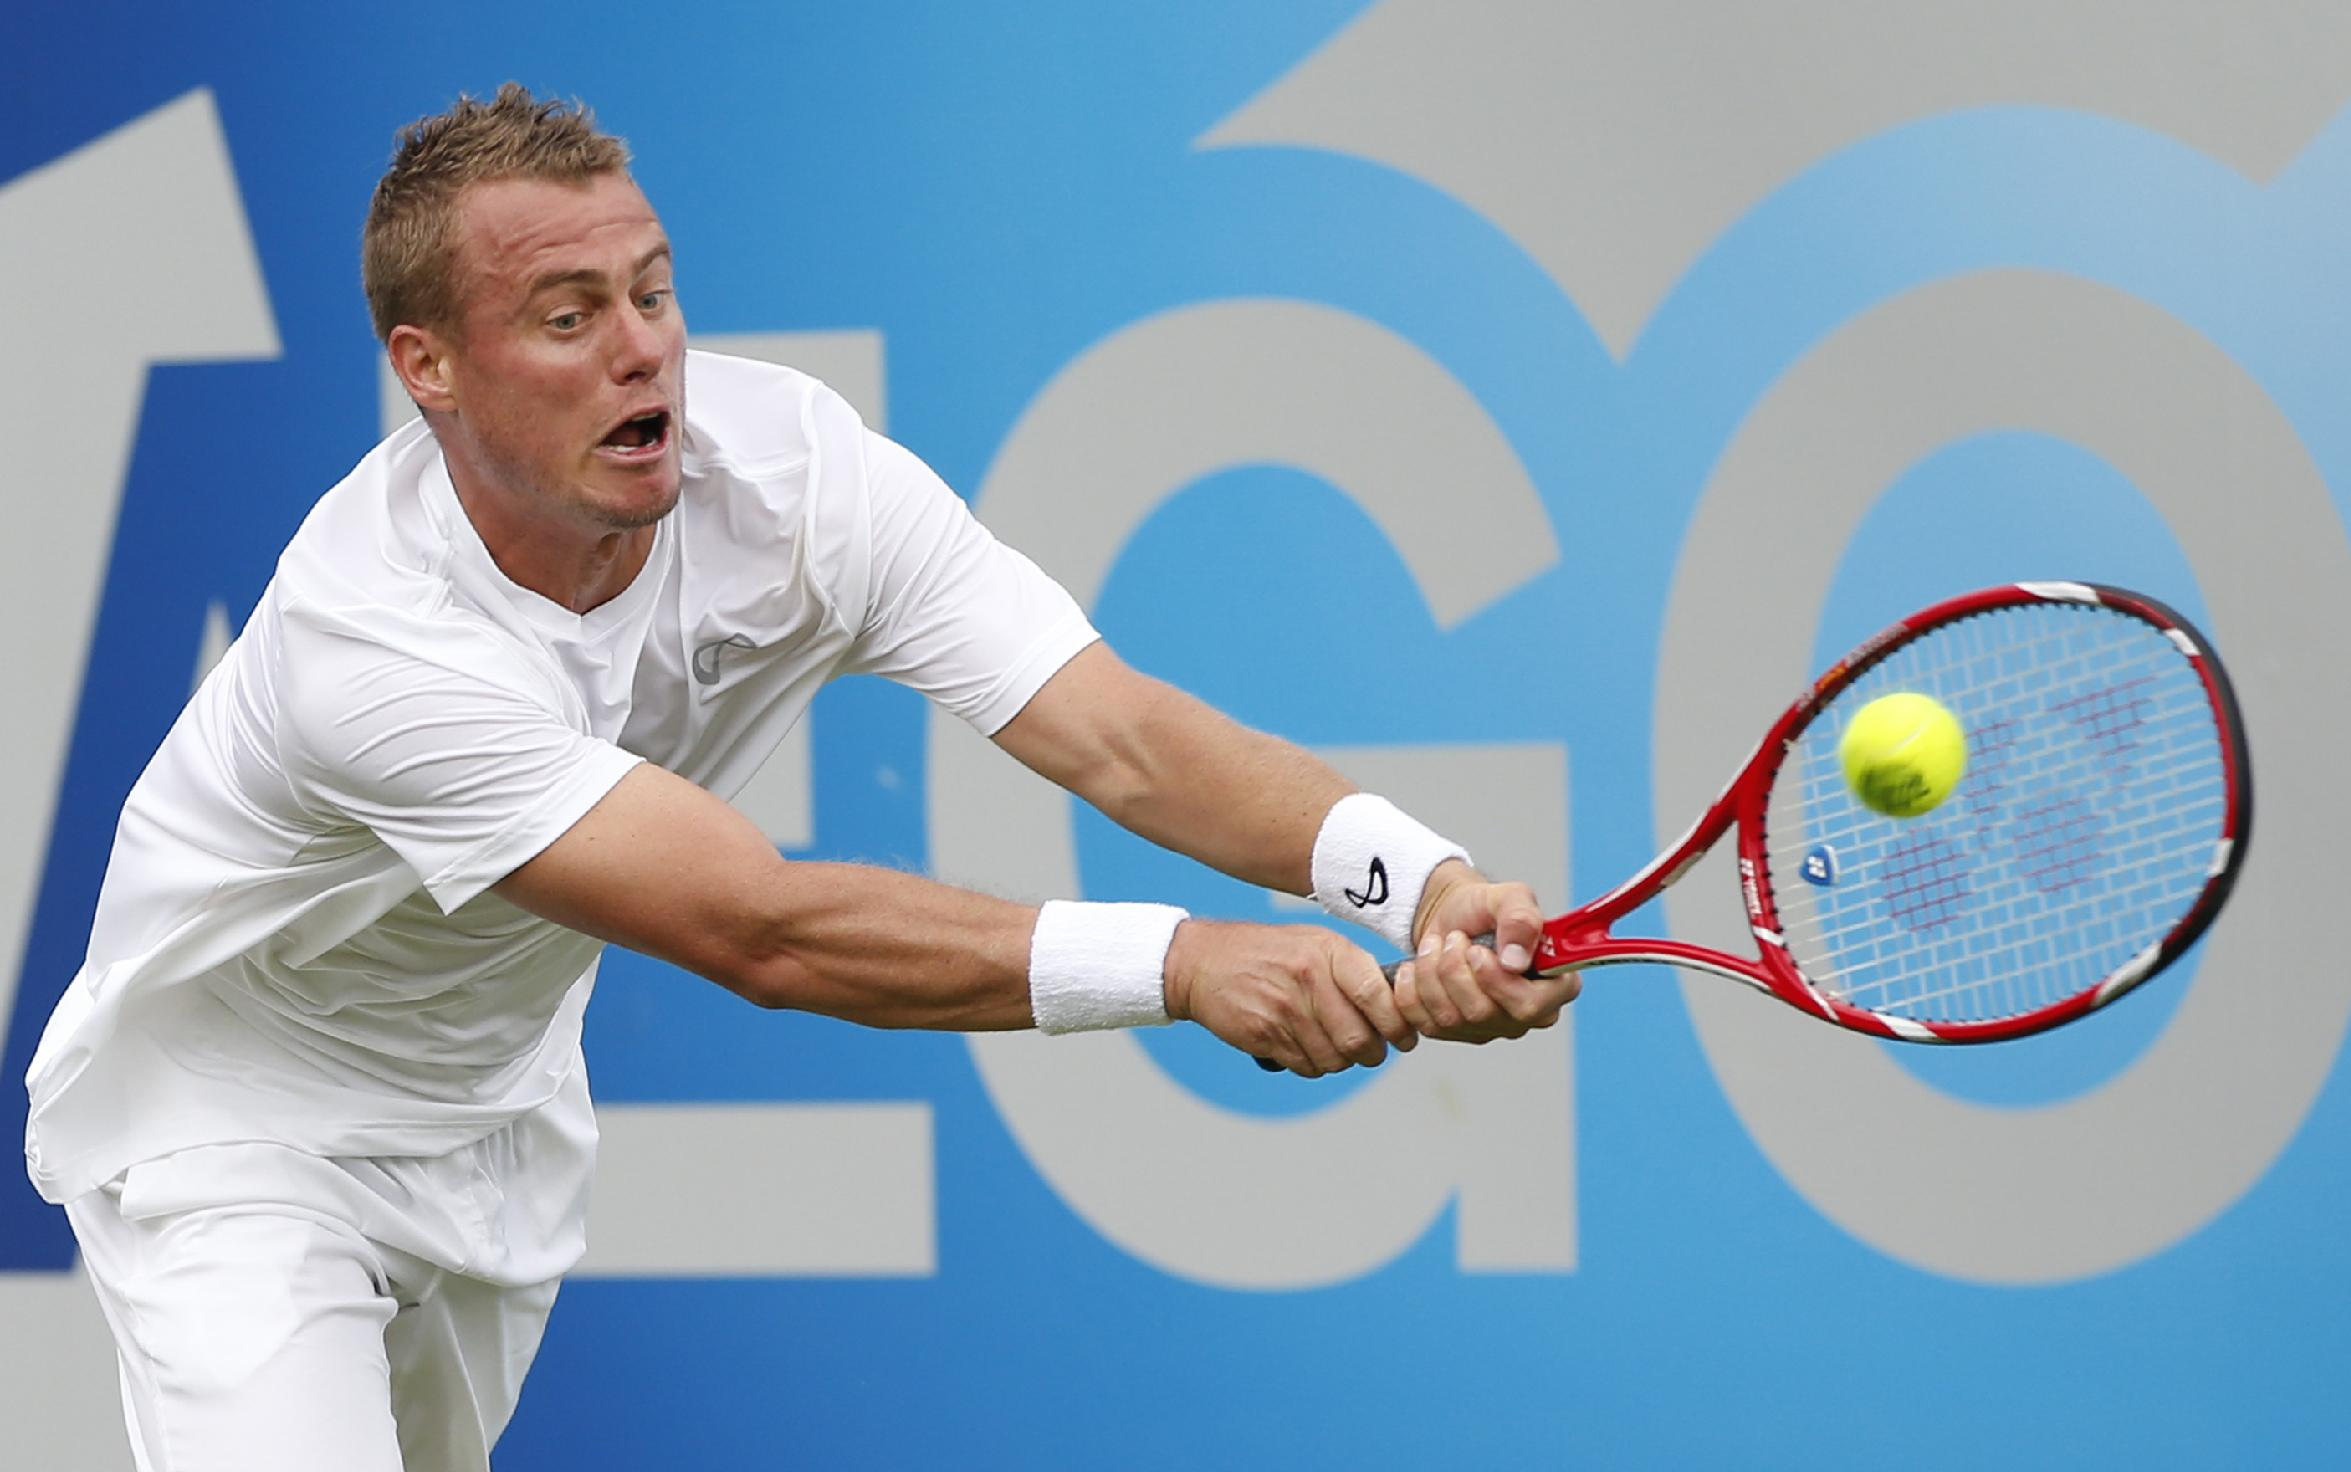 Australia's Lleyton Hewitt plays a return to Daniel Gimeno-Traver of Spain during their first round at Queen's Club grass court tennis tournament match in London, Monday June 9, 2014